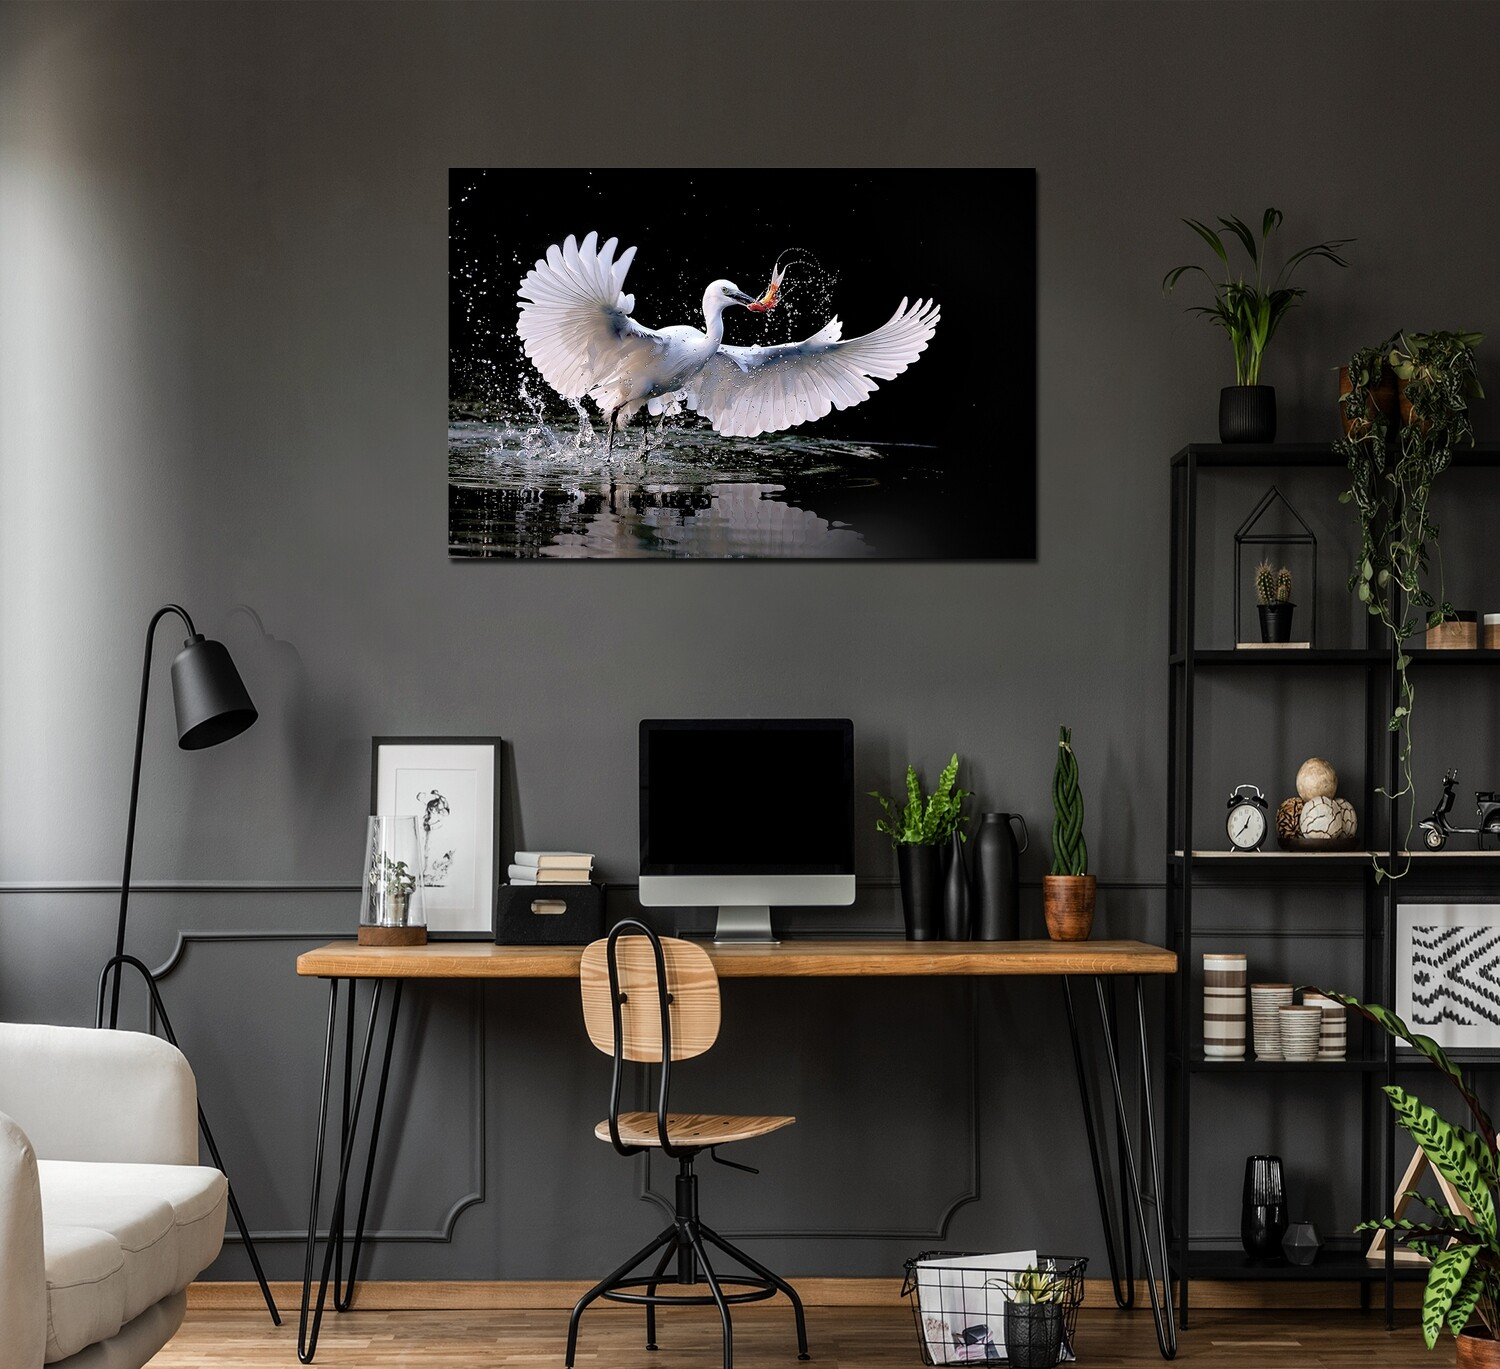 Crane Fish Catch Picture Printed on Frameless Acrylic Glass - Modern Luxury Acrylic Glass Wall art - Frameless and Ready to Hang